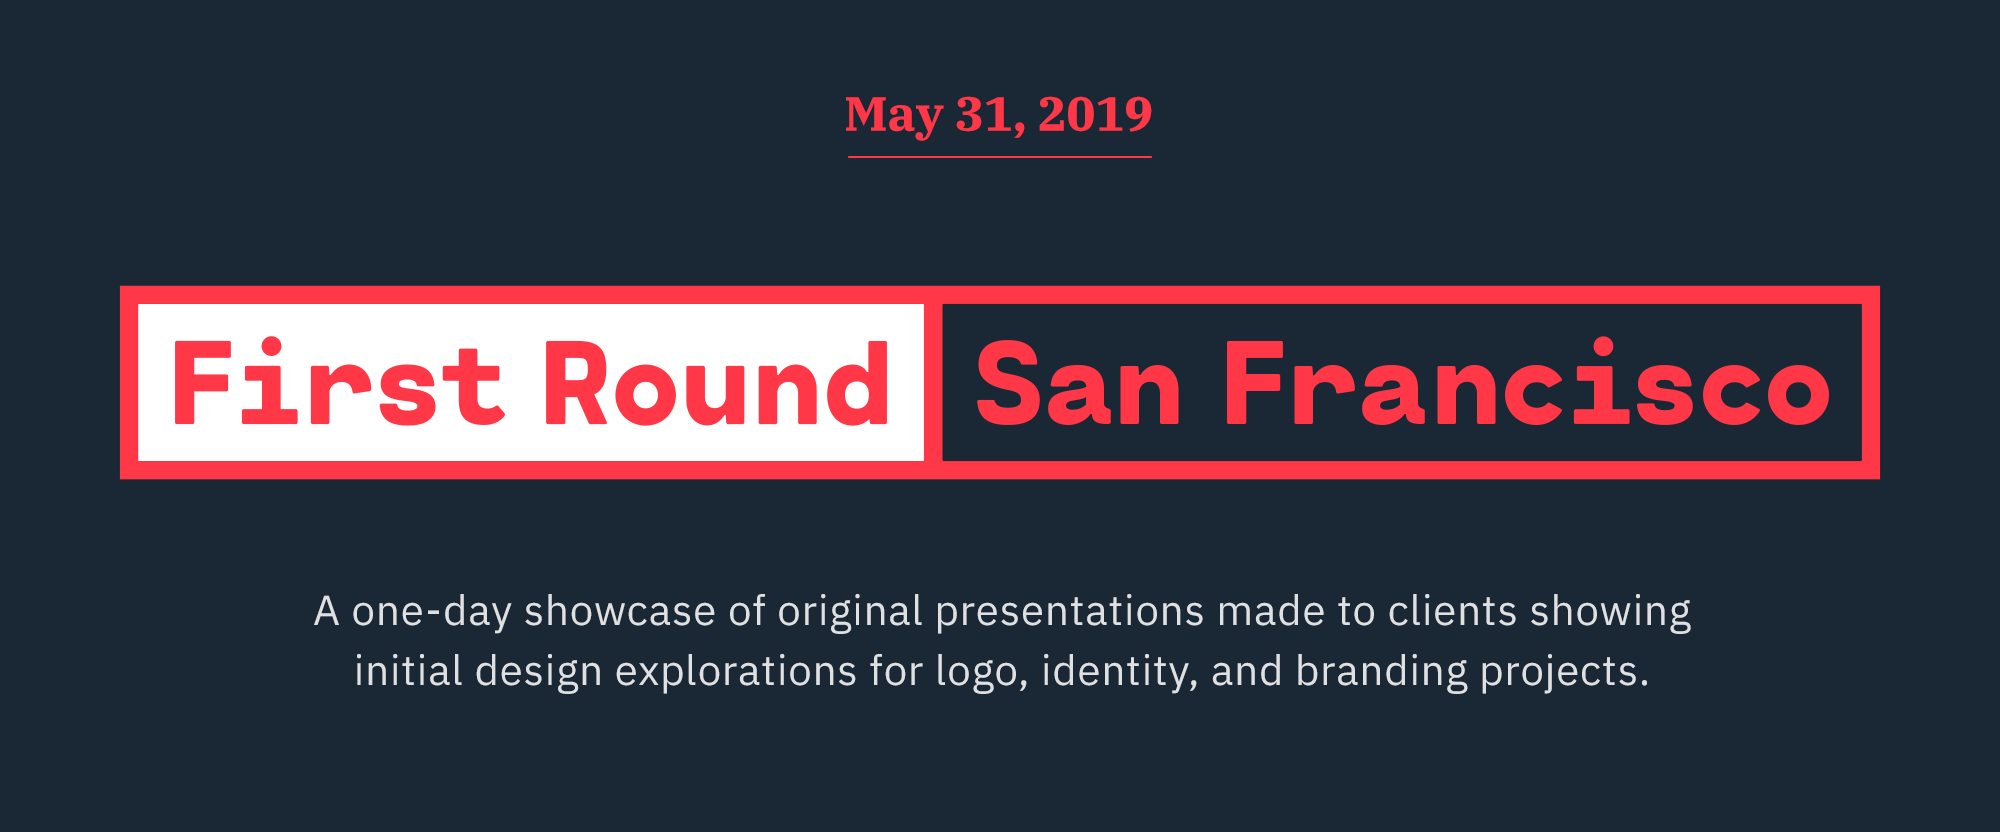 First Round 2019 - San Francisco: Tickets Available